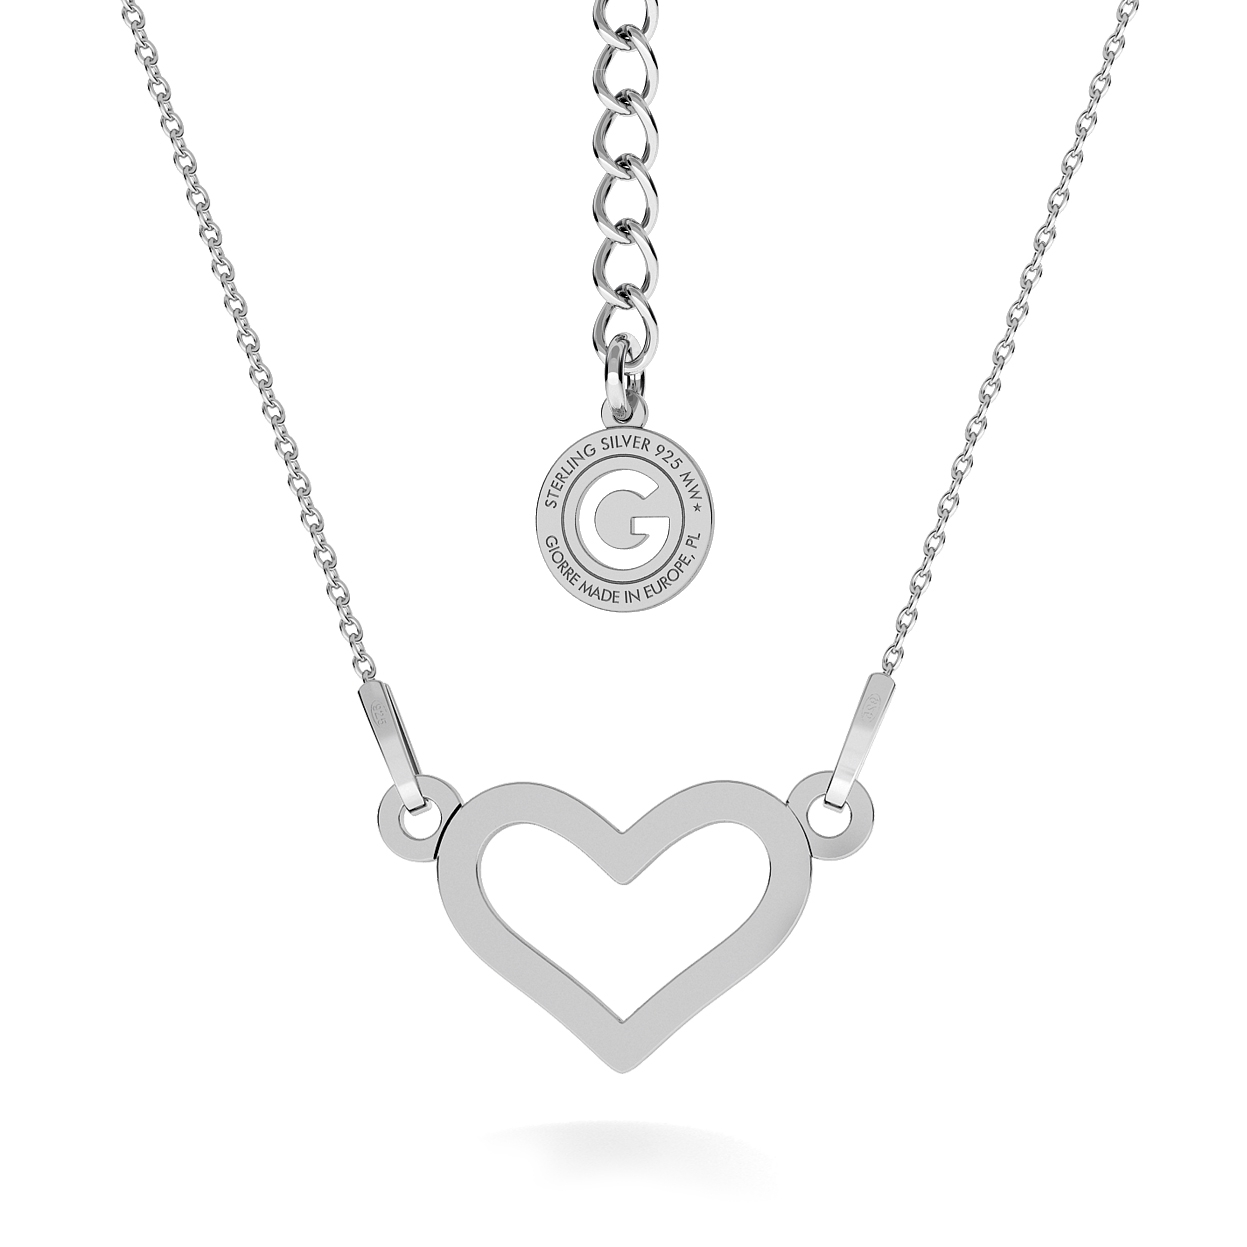 SIMPLY HEART NECKLACE